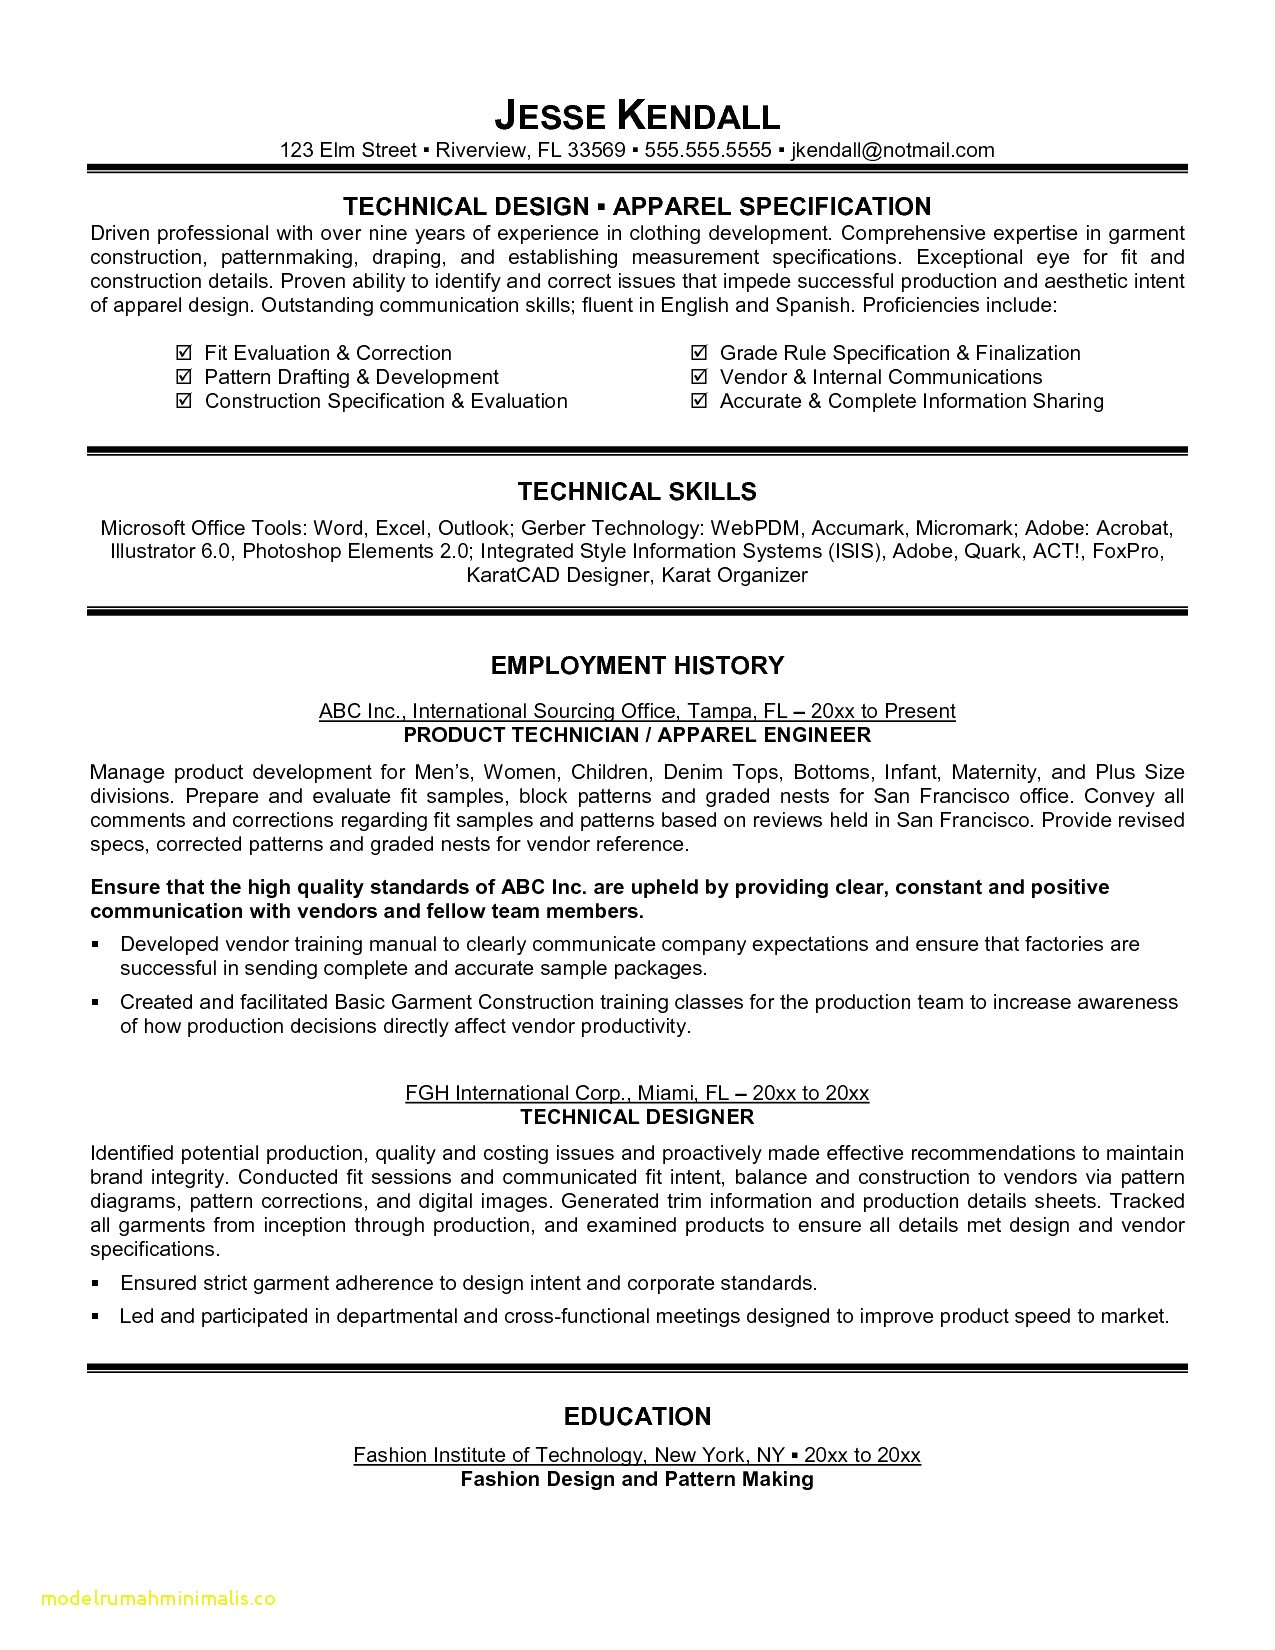 Microsoft Word Resume Templates 2018 Free top Result Free Resume Builder Microsoft Word Unique Sales